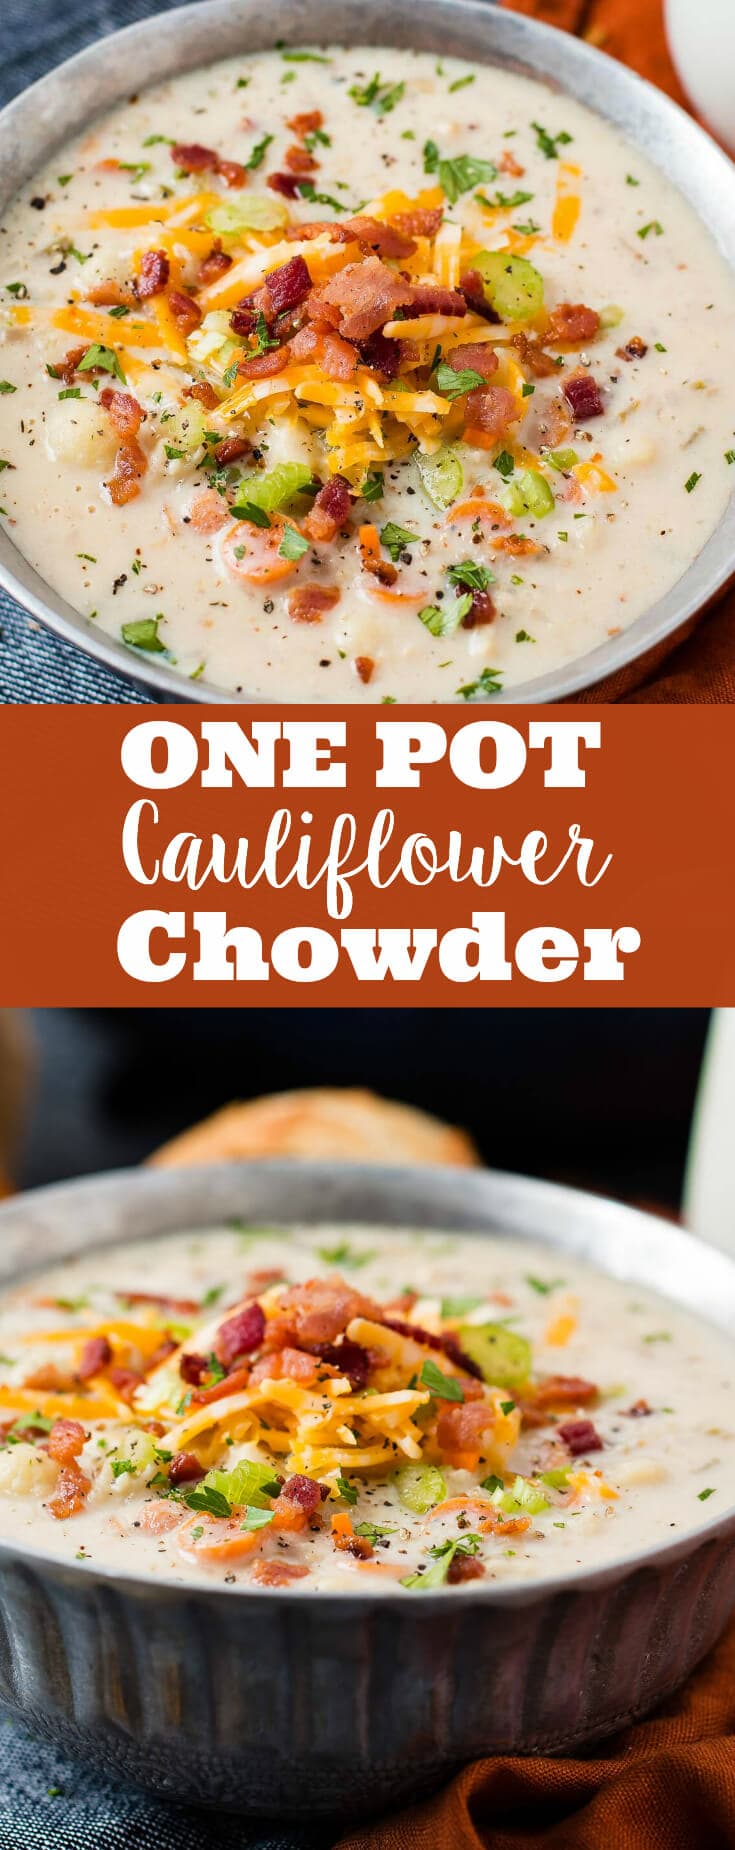 Move over, corn chowder and back it up, loaded baked potato soup, this one pot cauliflower chowder is the best fall soup this year!